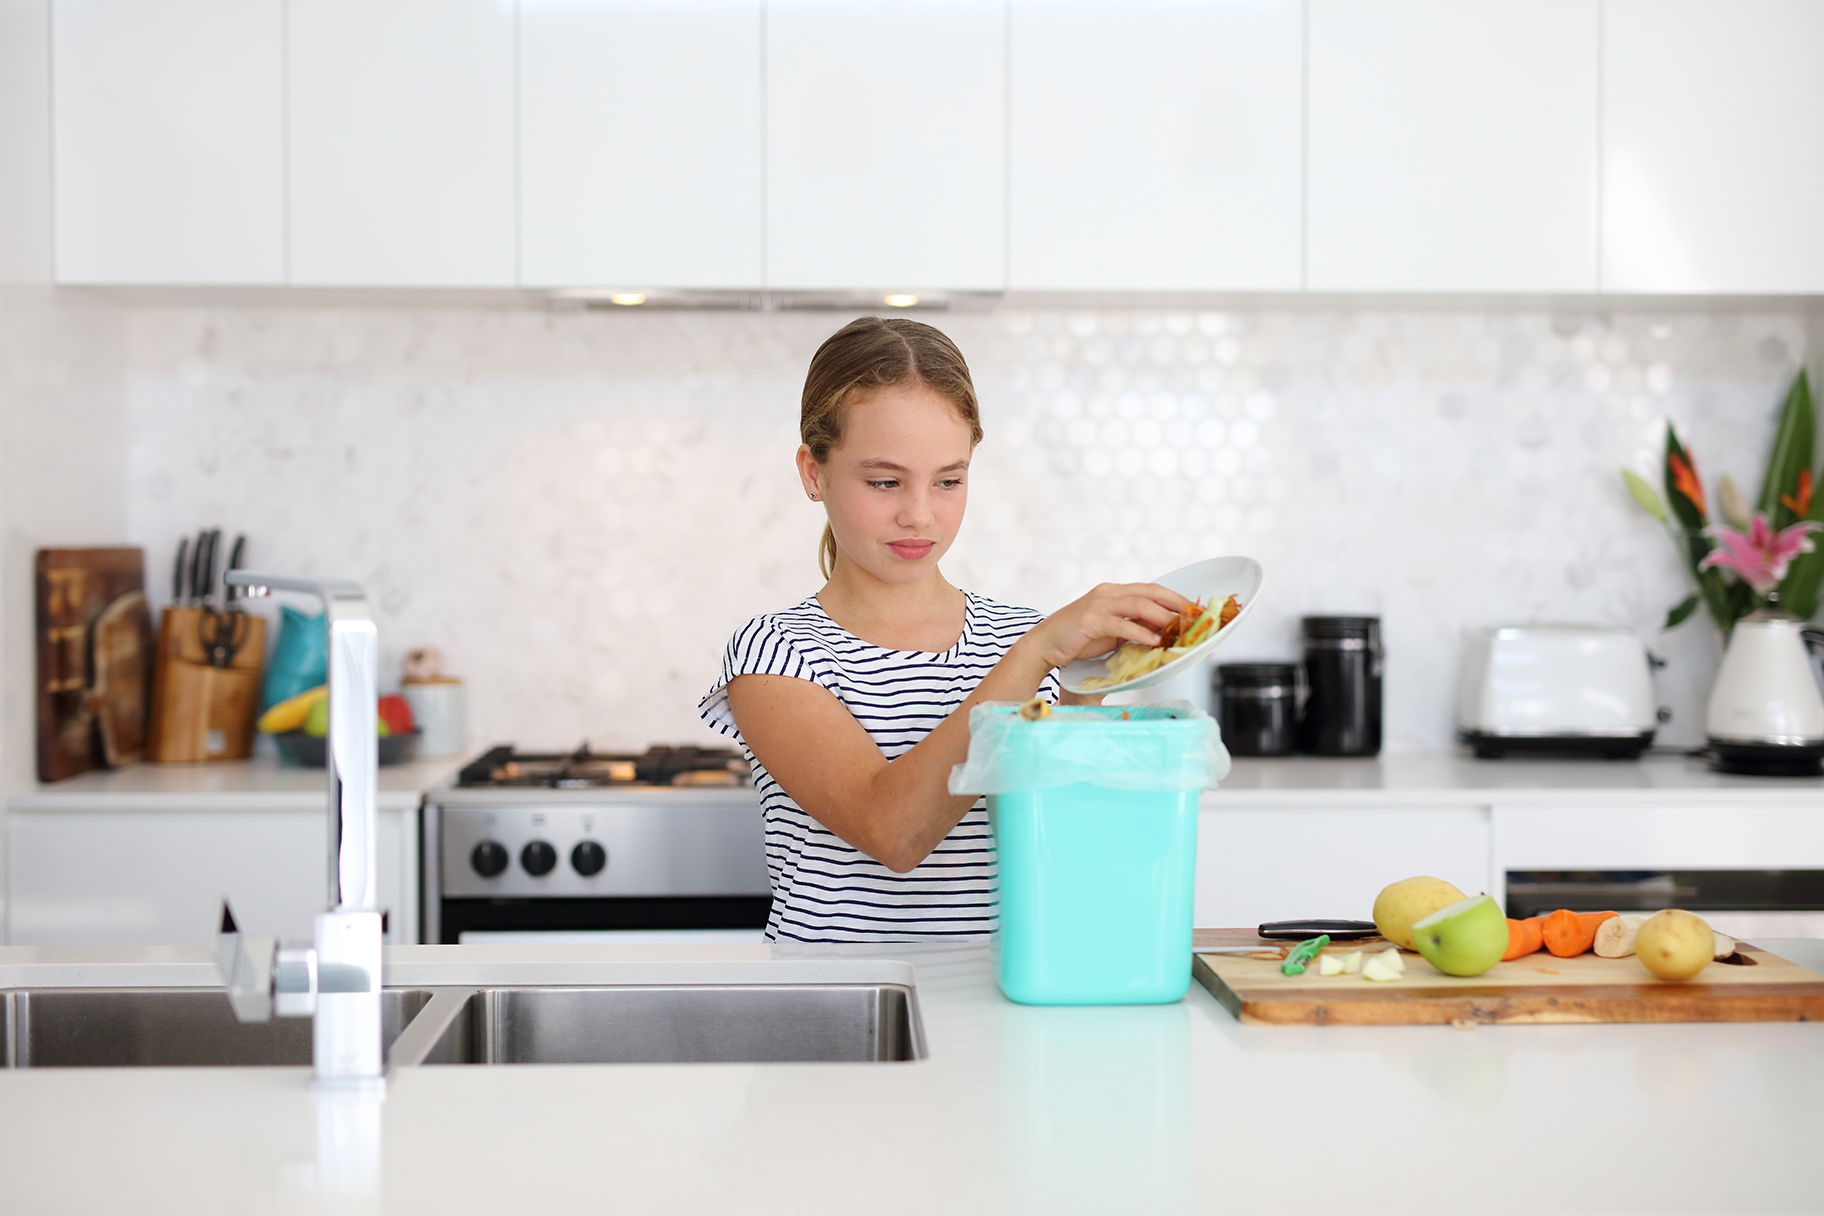 Girl putting food scraps from a plate into the compost bin on kitchen bench